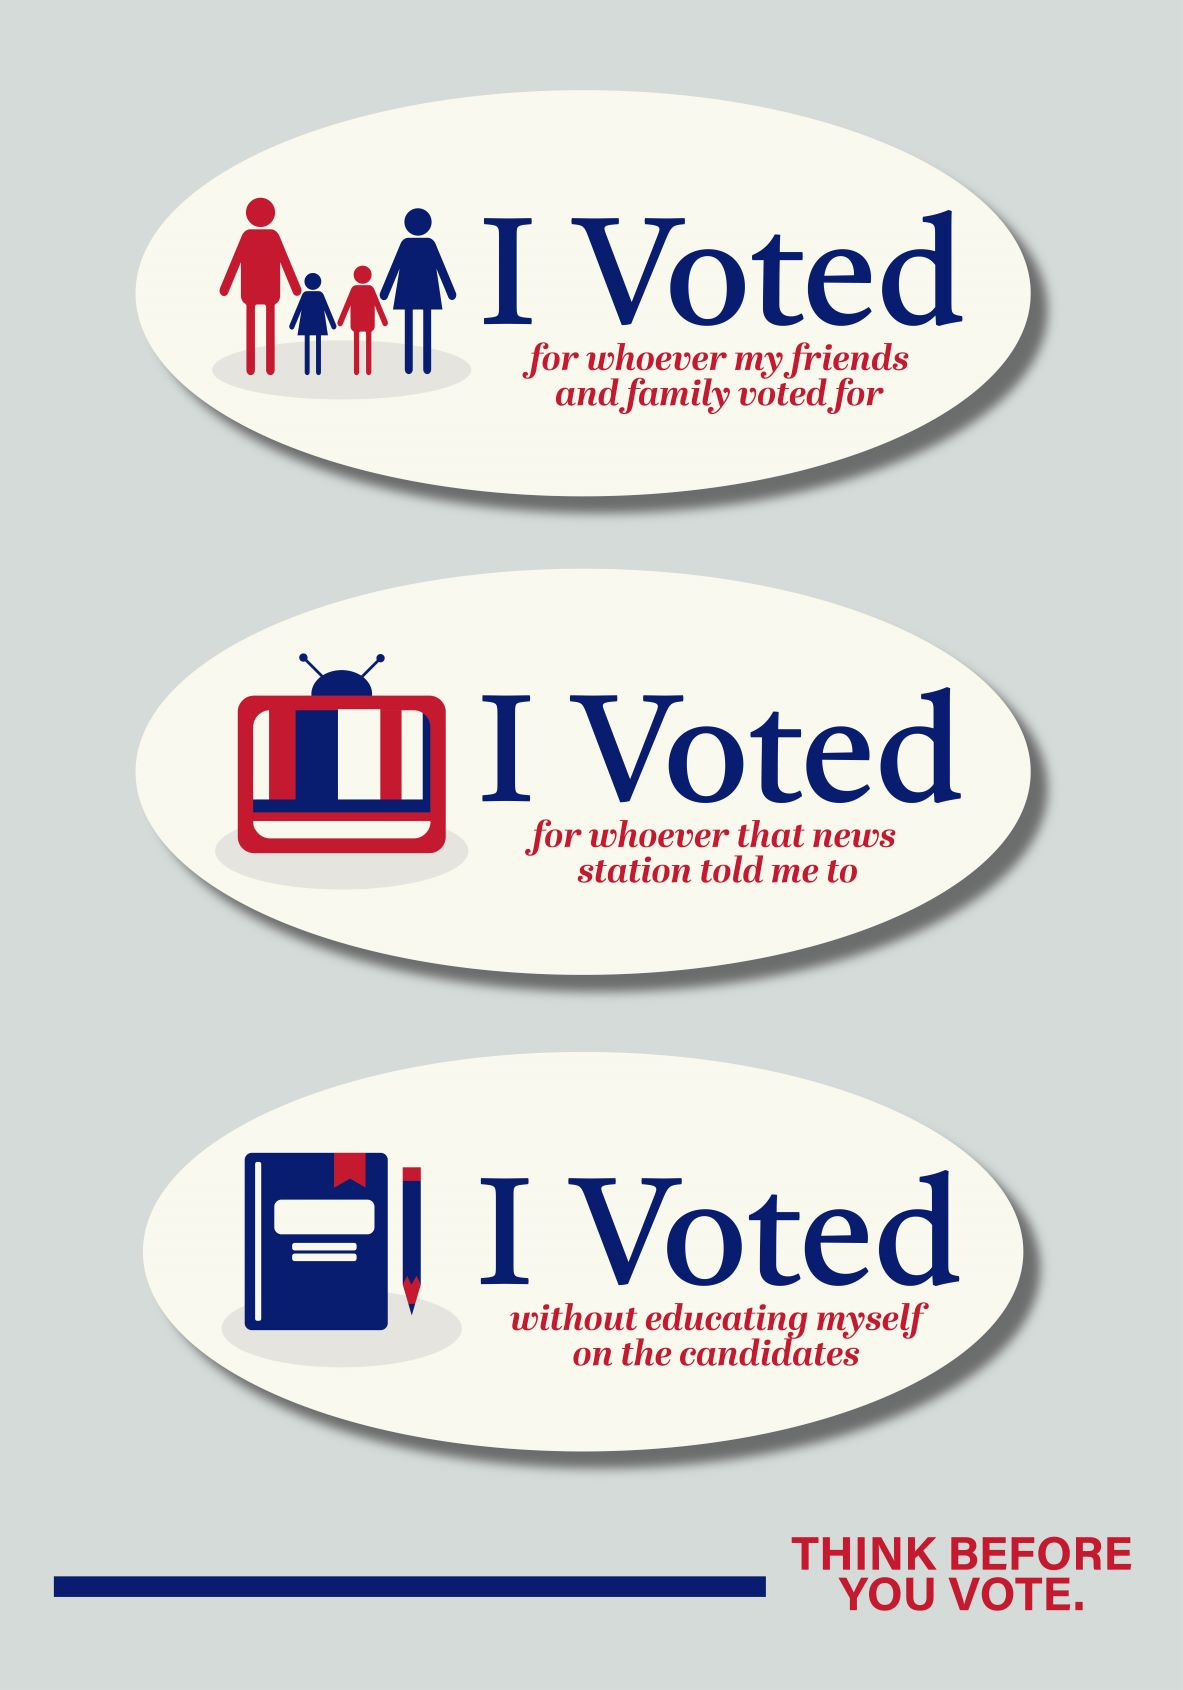 Image of I voted stickers, reading I voted for whoever my friends and family voted for, I voted for whoever the news station told me to, I voted without educating myself on the candidates, Think Before you vote